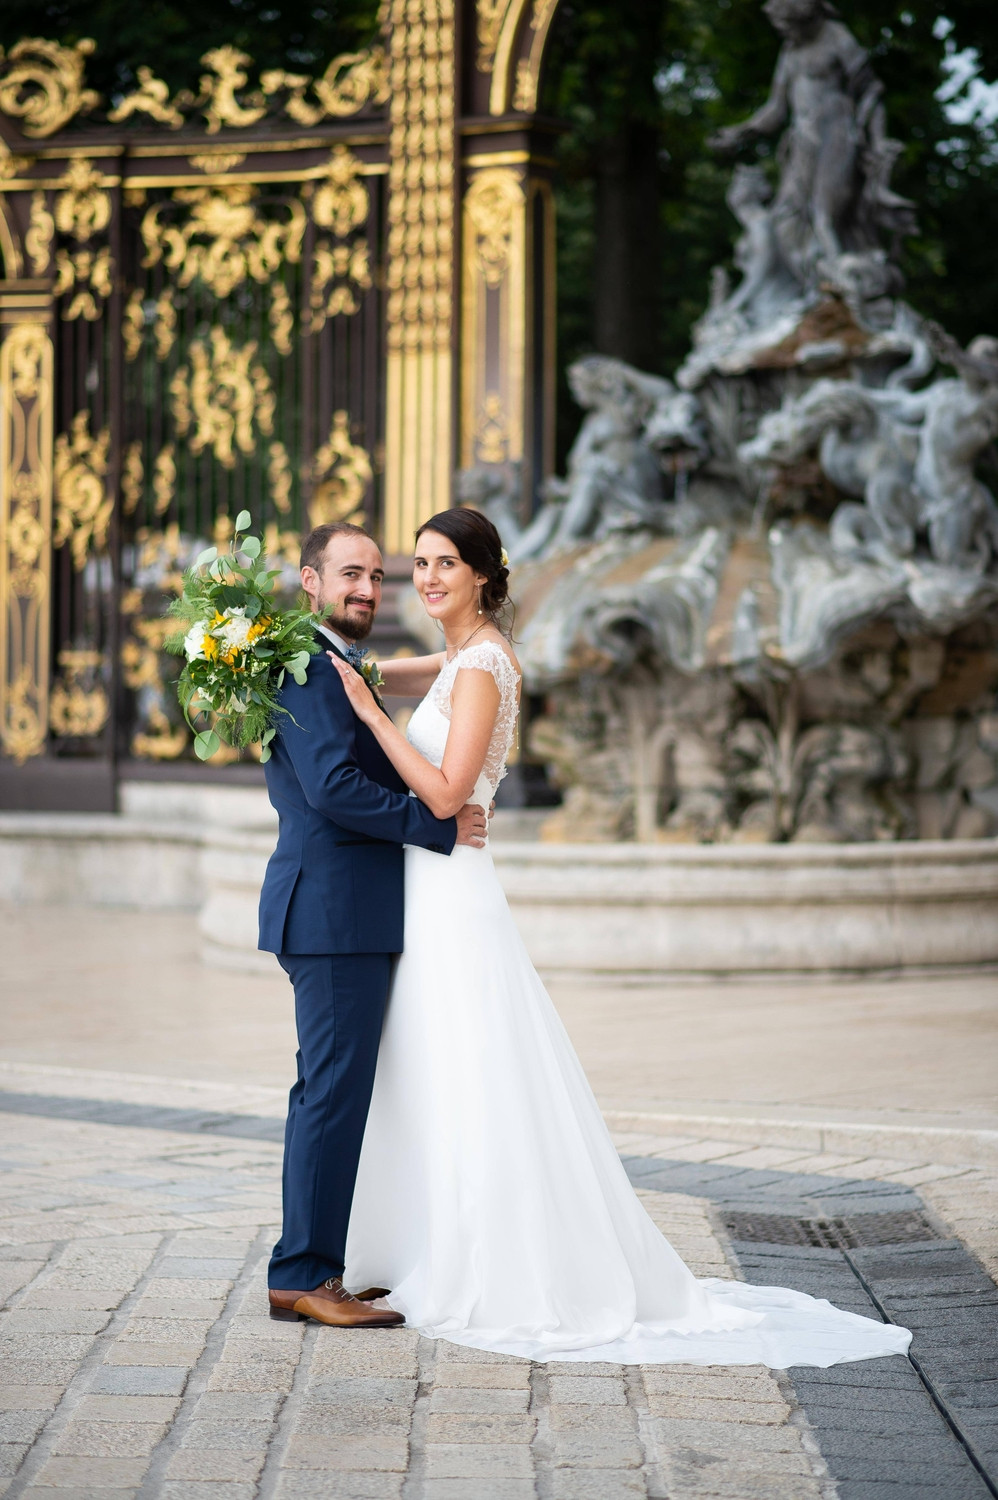 photographe mariage mairie nancy place stanislas